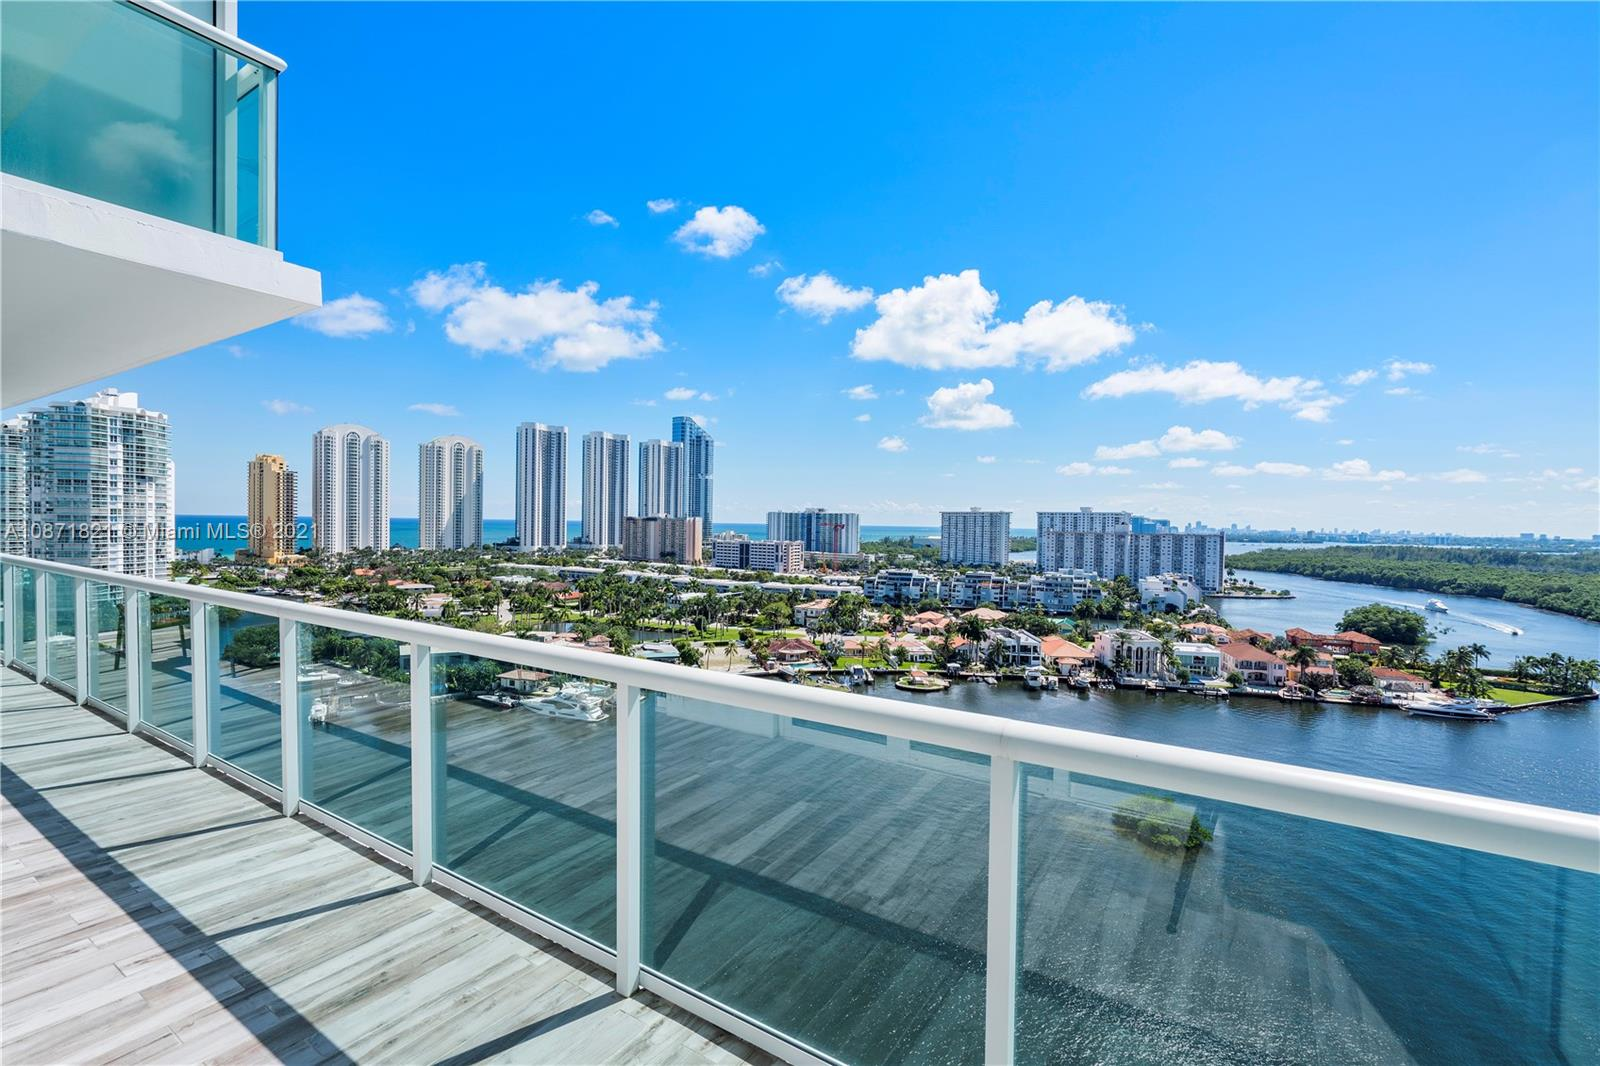 AMAZING NEW OPPORTUNITY AT 400 SUNNY ISLES! Very saw after split floor plan, with large balcony exposing stunning panoramic Intracoastal views with Sunny Isles Skyscrapers bordering the sky on the left and Oleta National Park on the right, gorgeous to relax and enjoy. This luxury 3 Bedrooms/3 Baths condo unit, fully furnished by Crate & Barrel, features a Master suite with a very large walk-in closet. Living room features lots of natural light. Full Service building, 24hrs front desk, gym, Tennis court, Pool, Marina, Valet. Walking distance to Sunny Isles Beach, near Aventura Mall, Bal Harbour Mall, schools, and world class restaurants. Featuring resort style pool deck with full service private Marina and boat with wet and dry slips, to all residents. Seller motivated. Vacant easy to show!